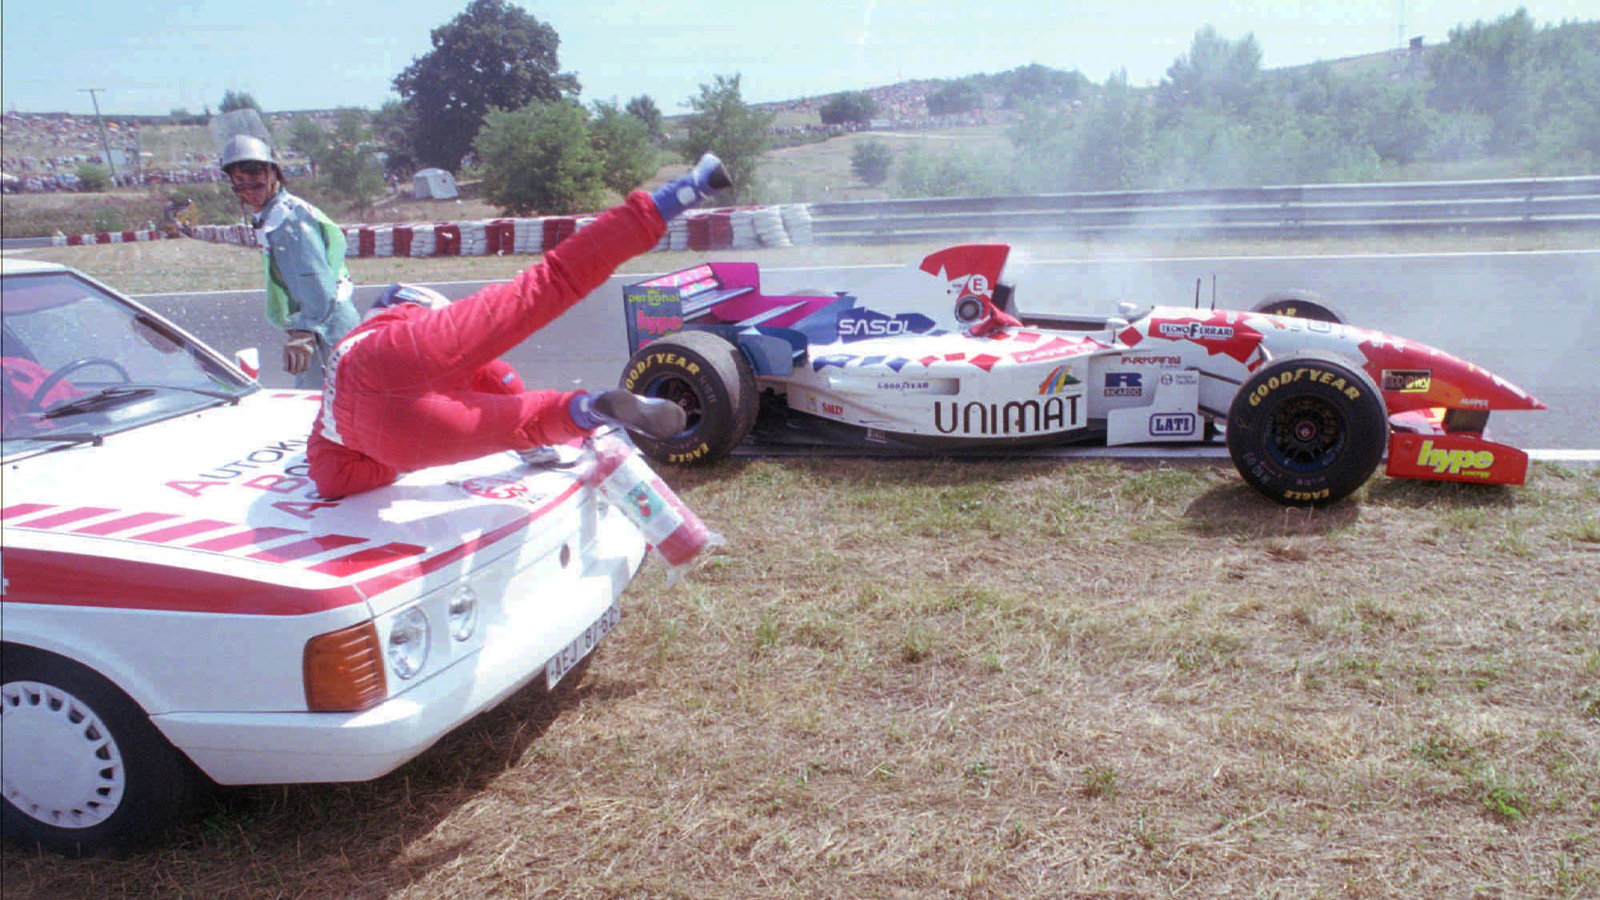 Click here to read The Most Tragic-Yet-Hilarious Moment In Motorsports History